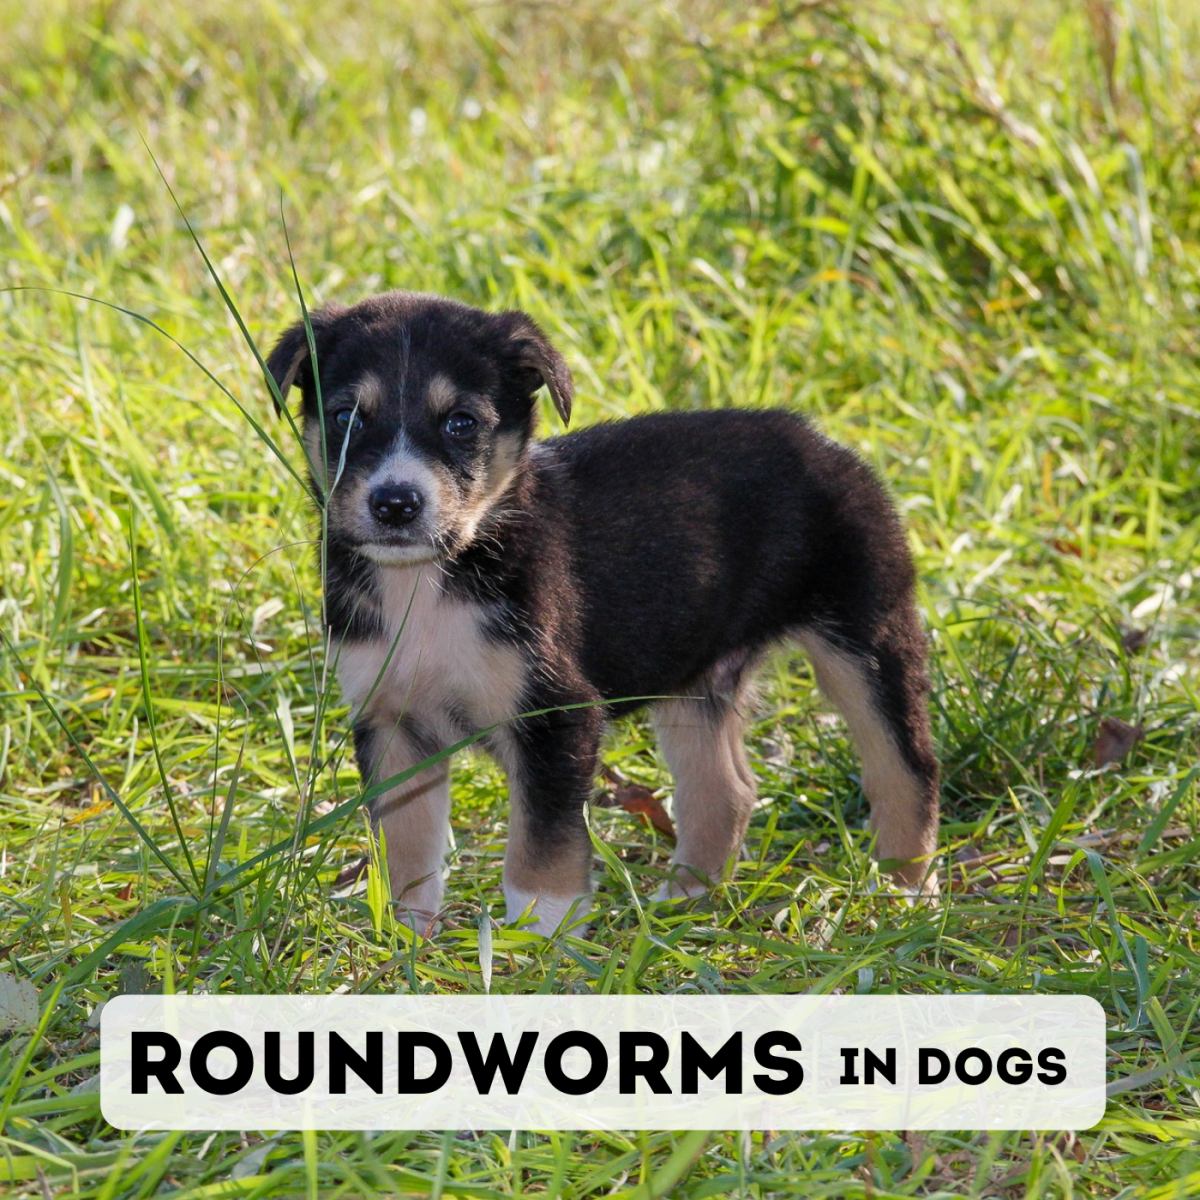 Learn about the species of roundworms that affect dogs, as well as the symptoms and treatment of an infestation.